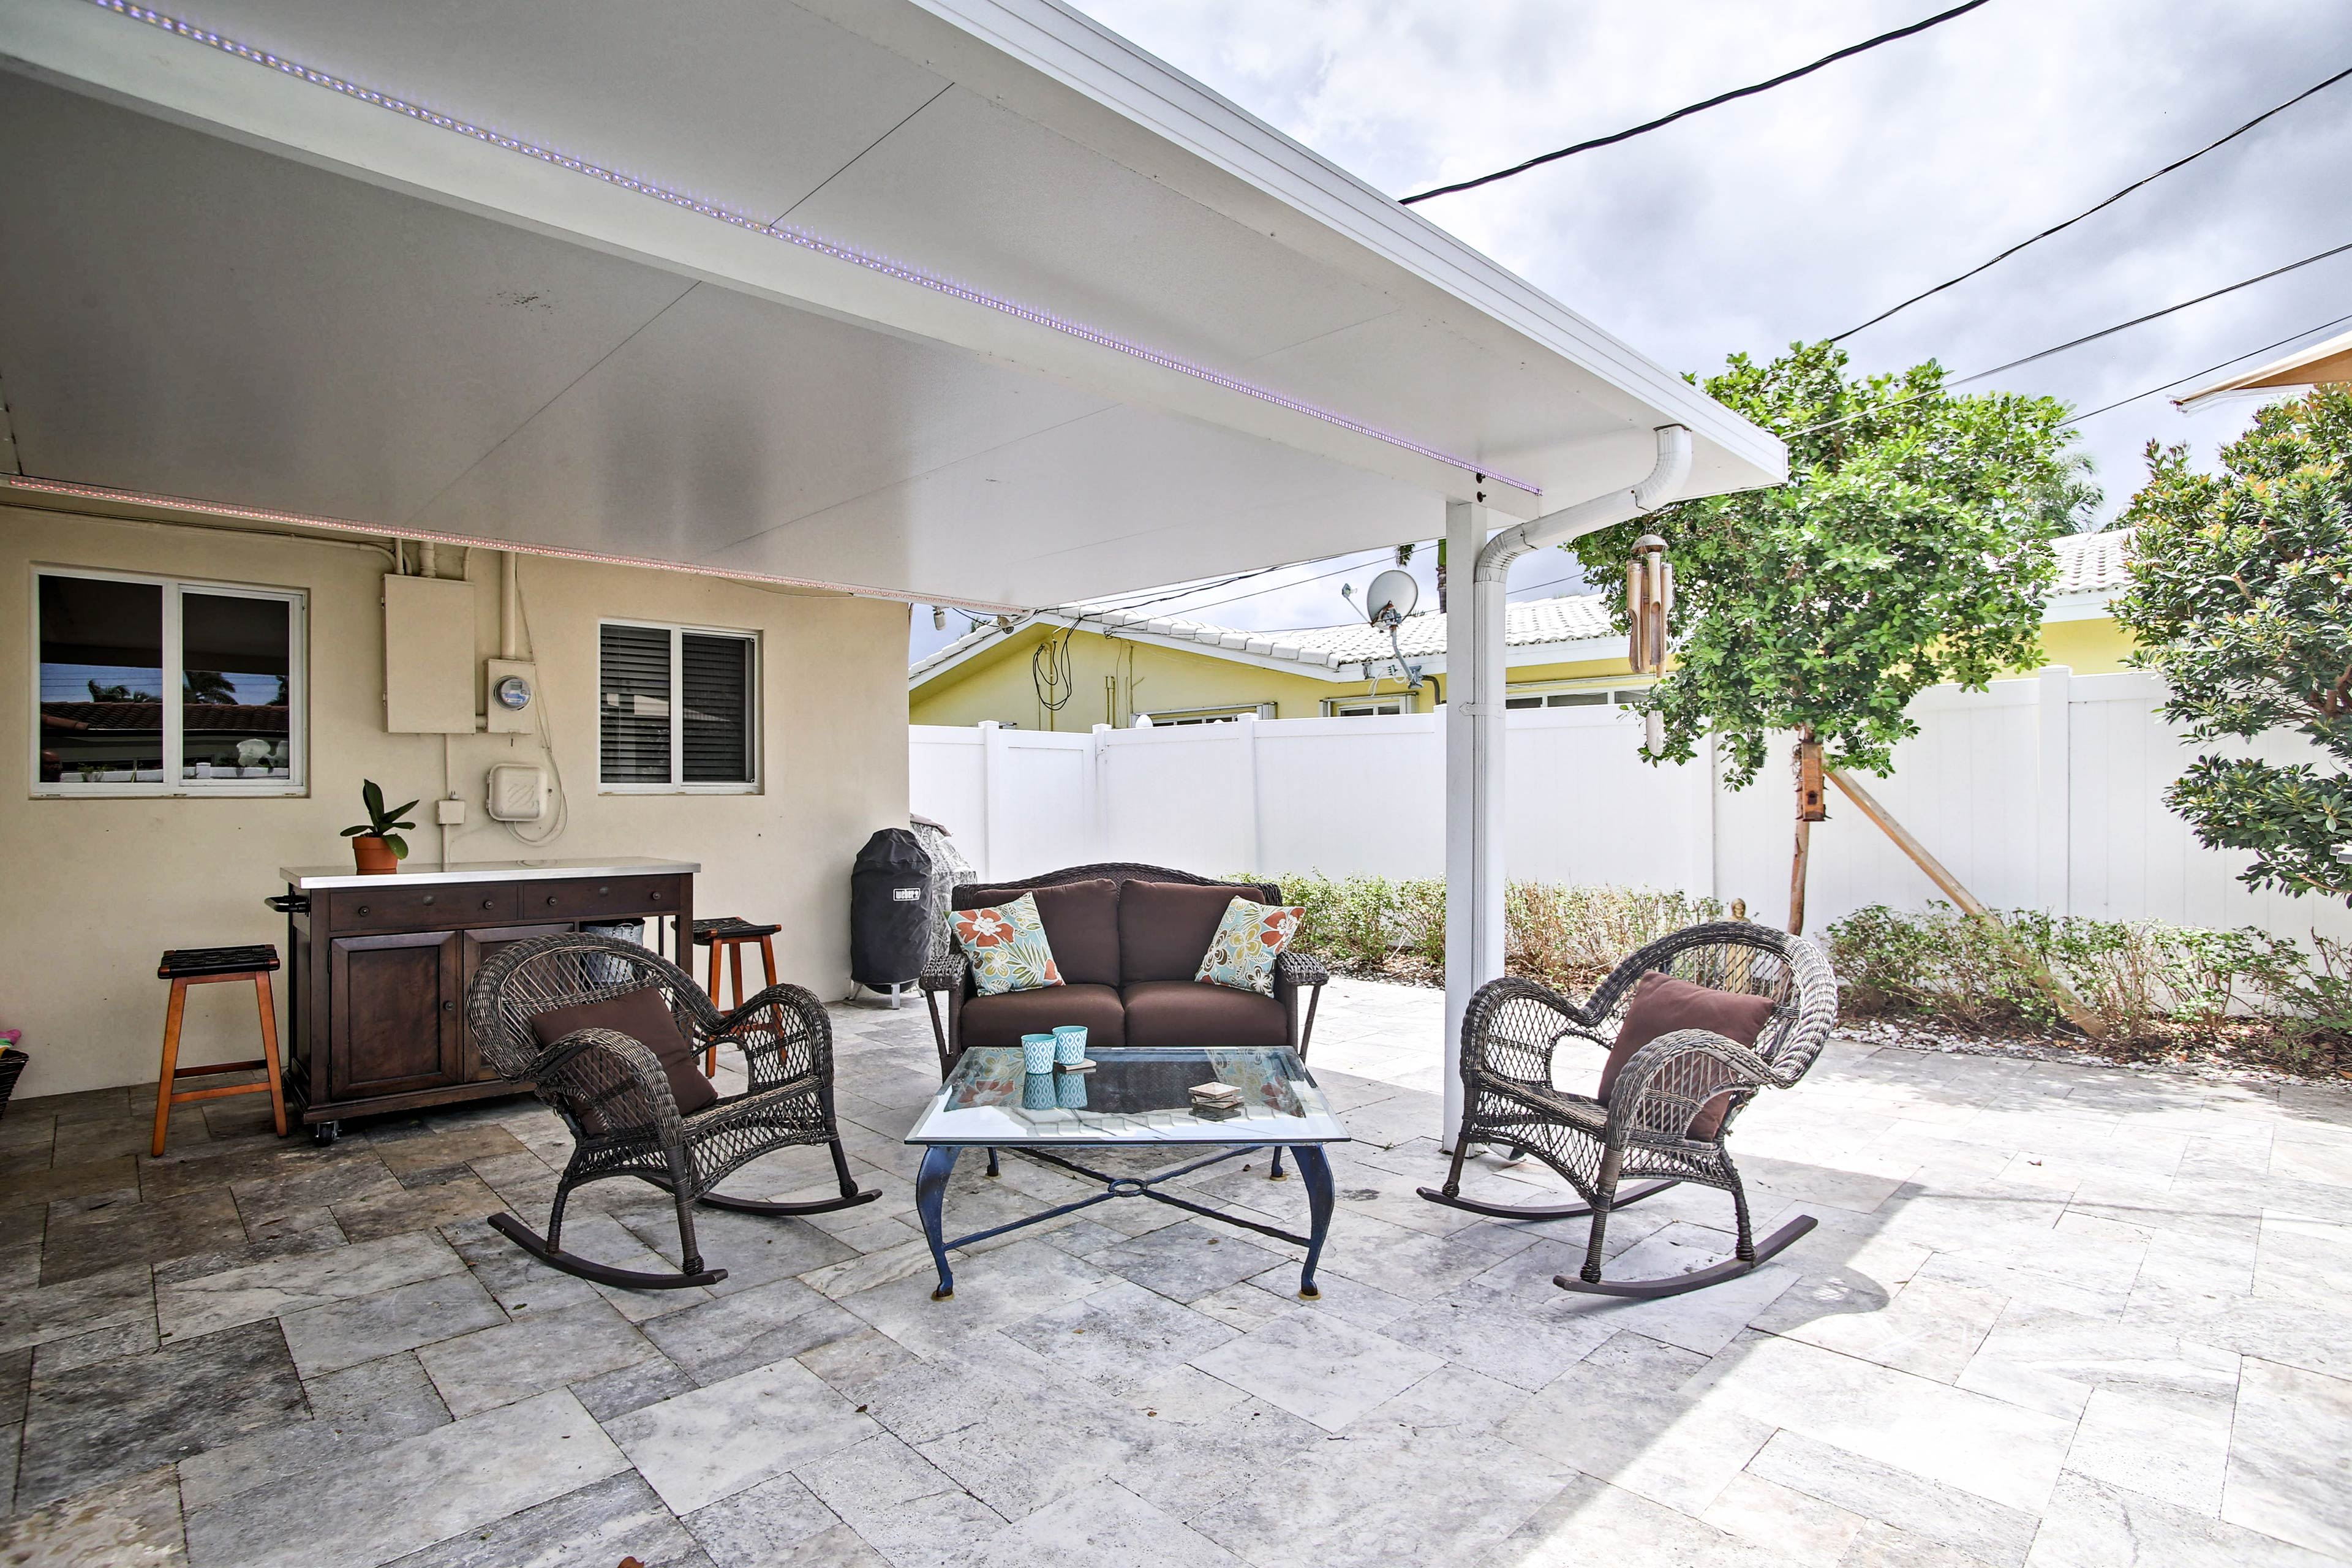 Savor morning coffee and evening nightcaps on the furnished patio.